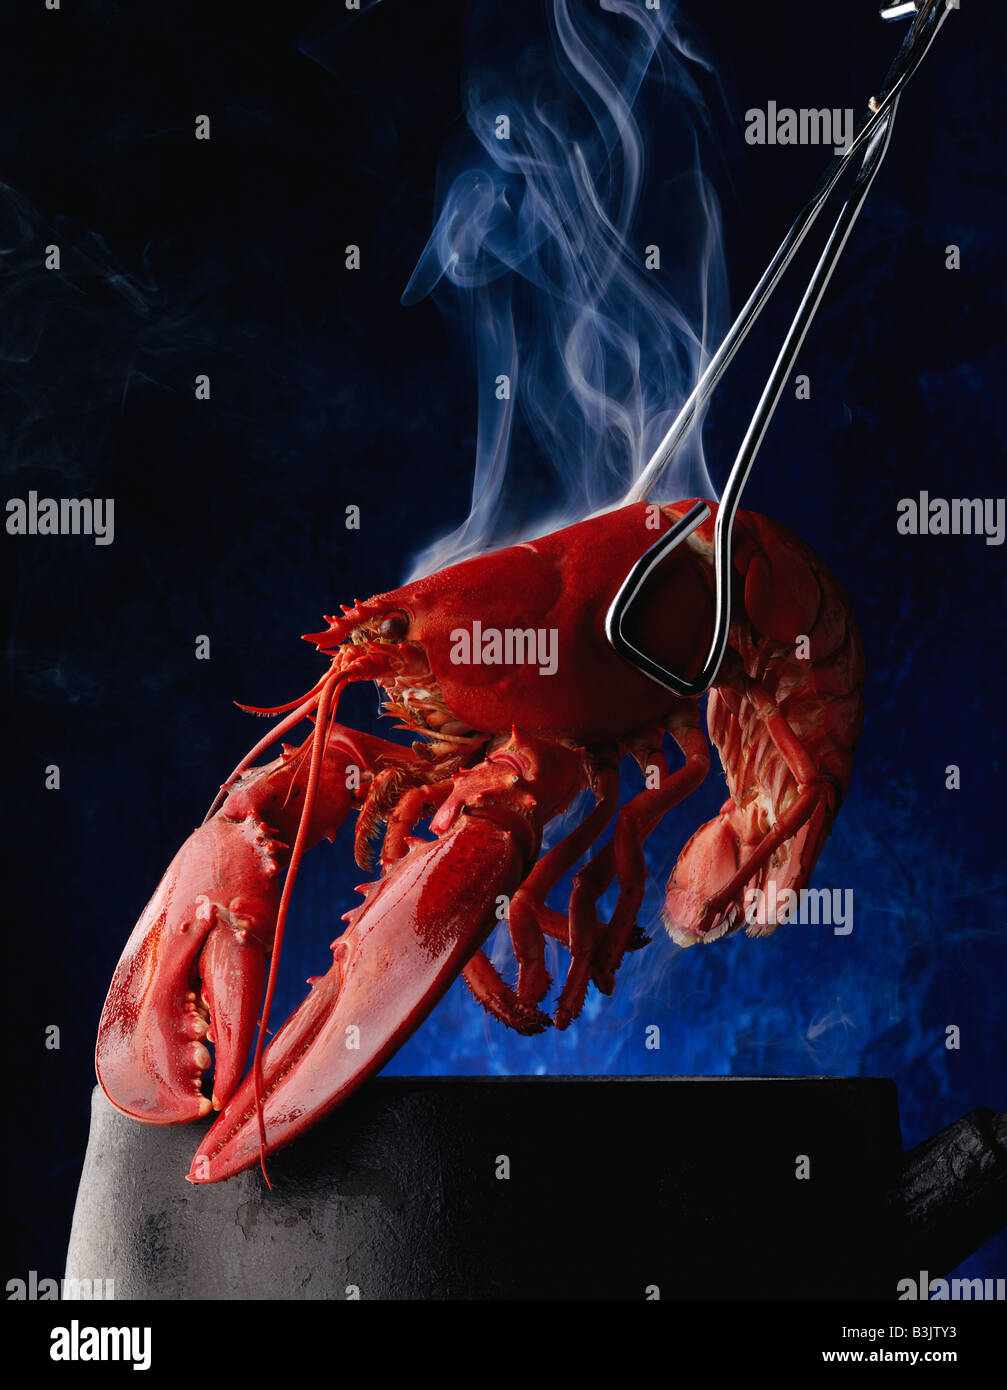 Graphic Photograph Cooked Lobster Stock Photos & Graphic Photograph ...